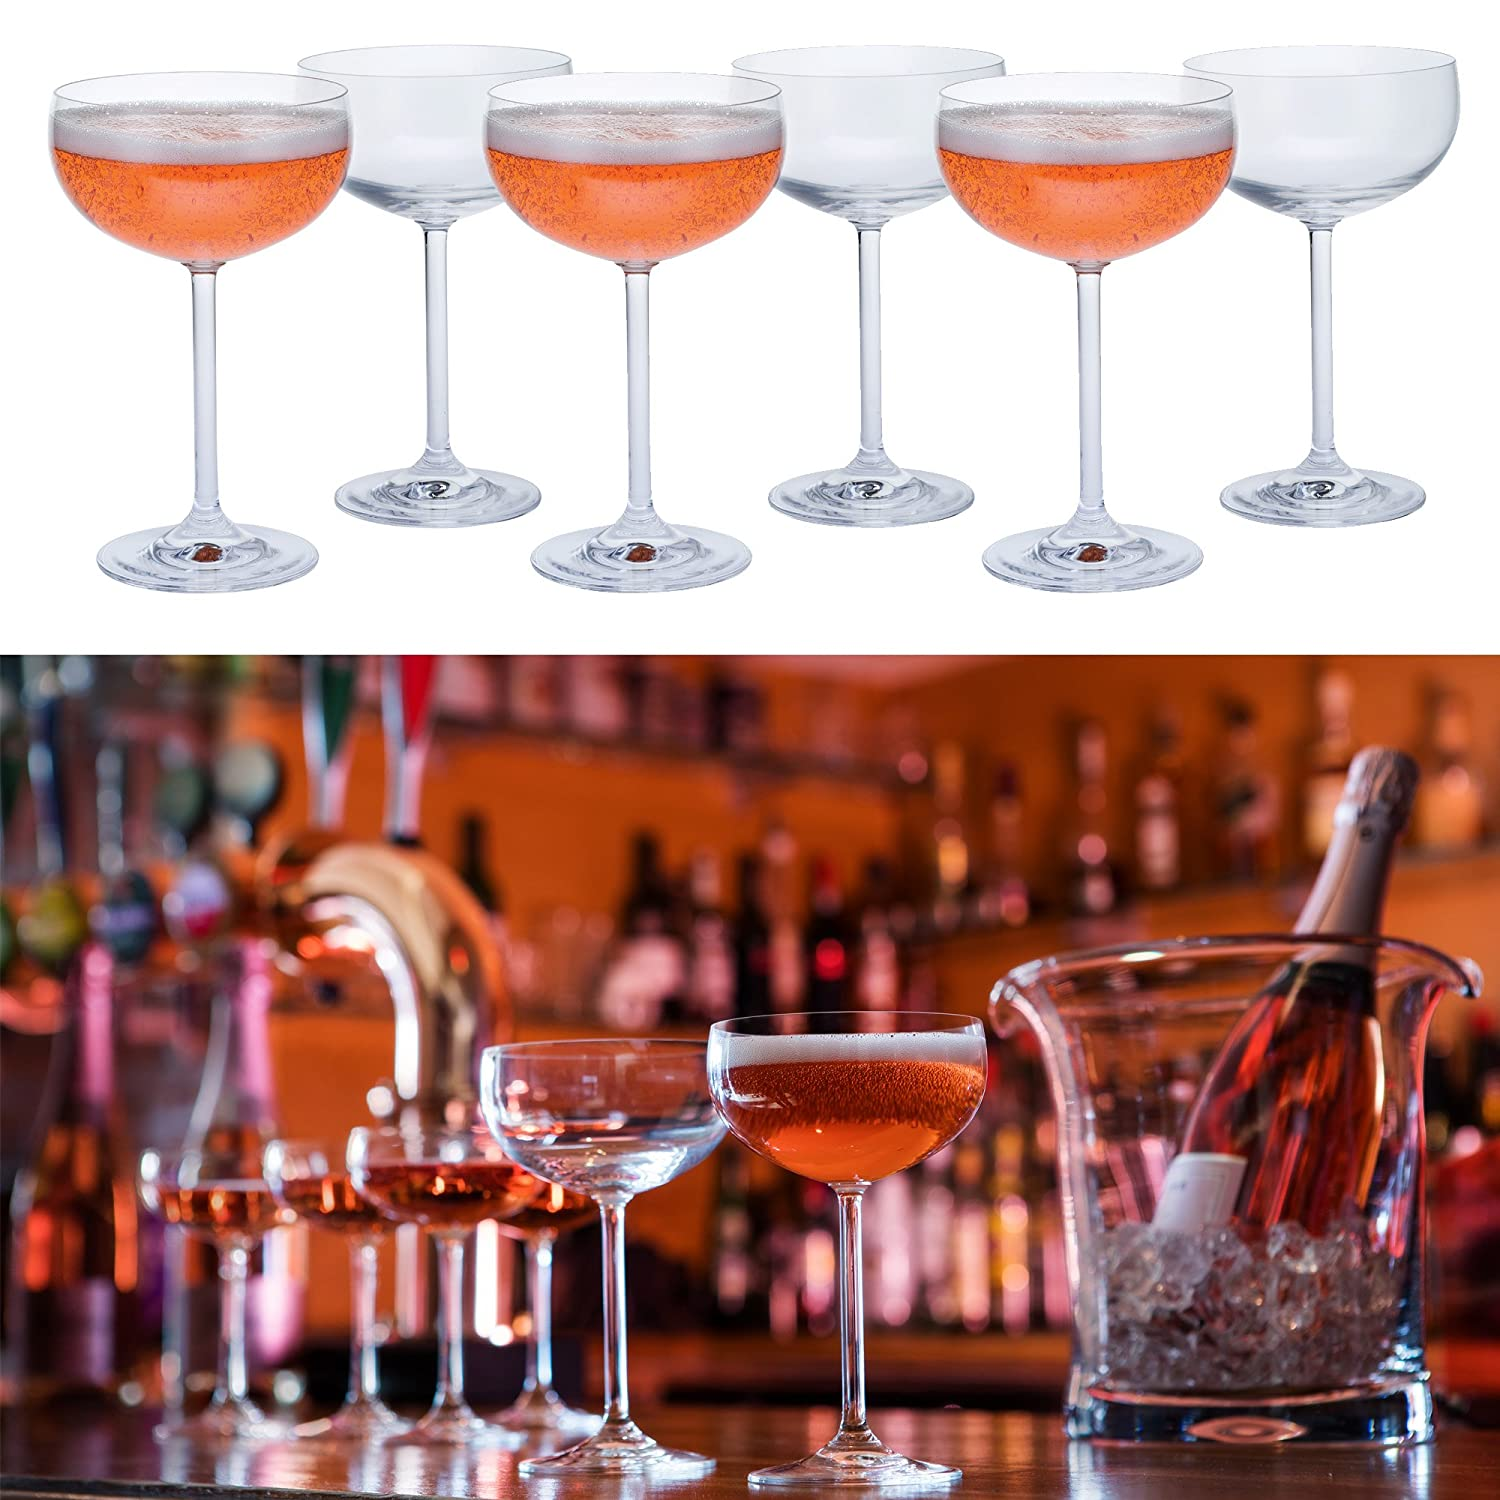 Bar Amigos SPECIAL BOX OF 6 Traditional Champagne Saucers Cocktail Coupe Glasses Special Party Glassware For Cocktails and Sparkling Wines Lead Free Crystal Dishwasher safe 280ml - Pack of 6